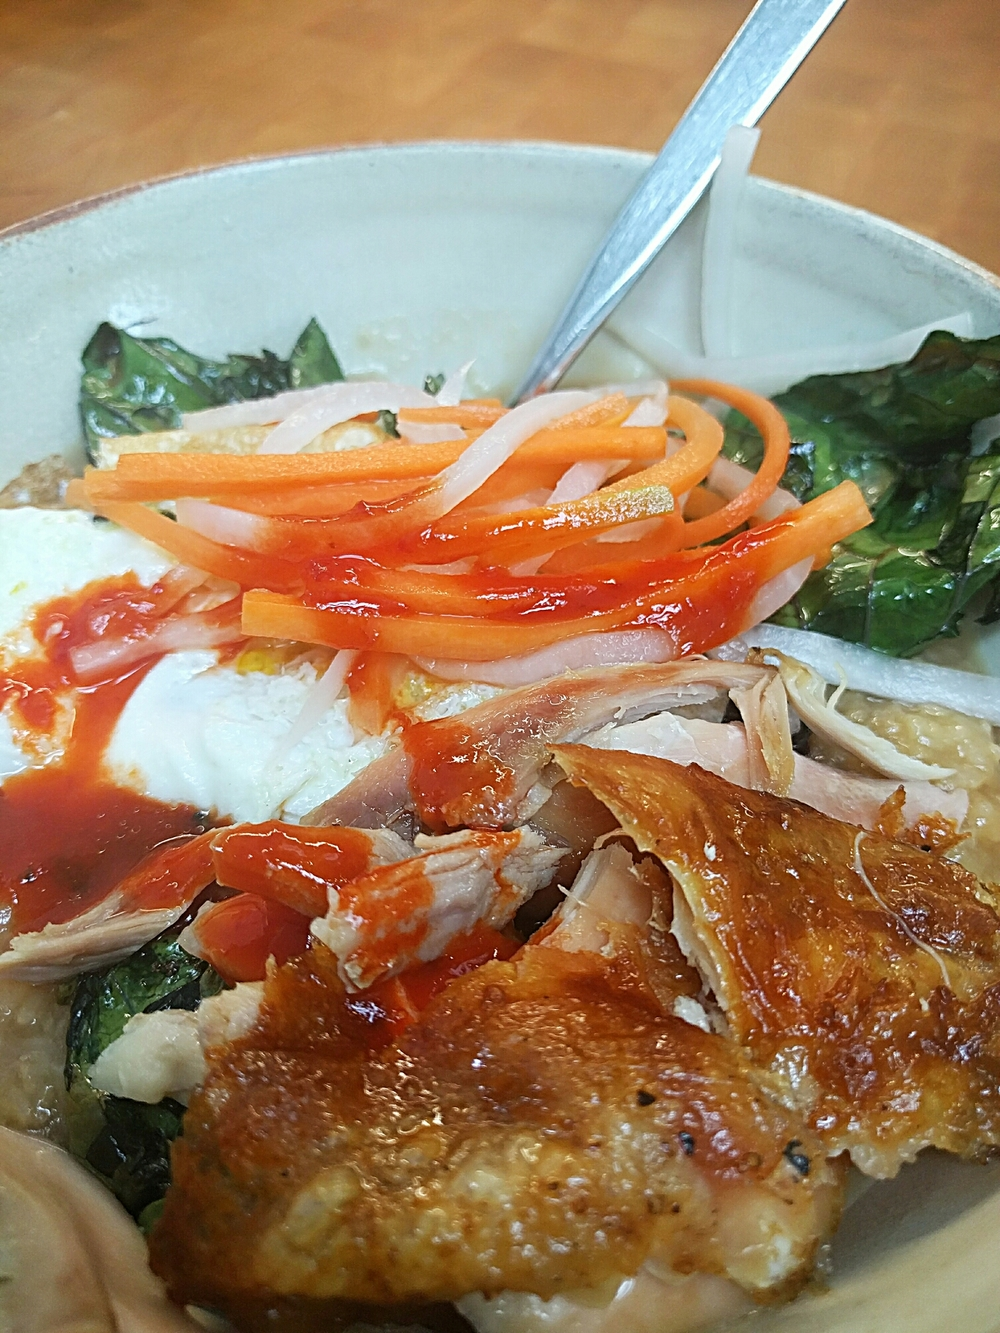 Jasmine rice, roast chicken, daikon and carrot pickle, over-easy egg, tree collards